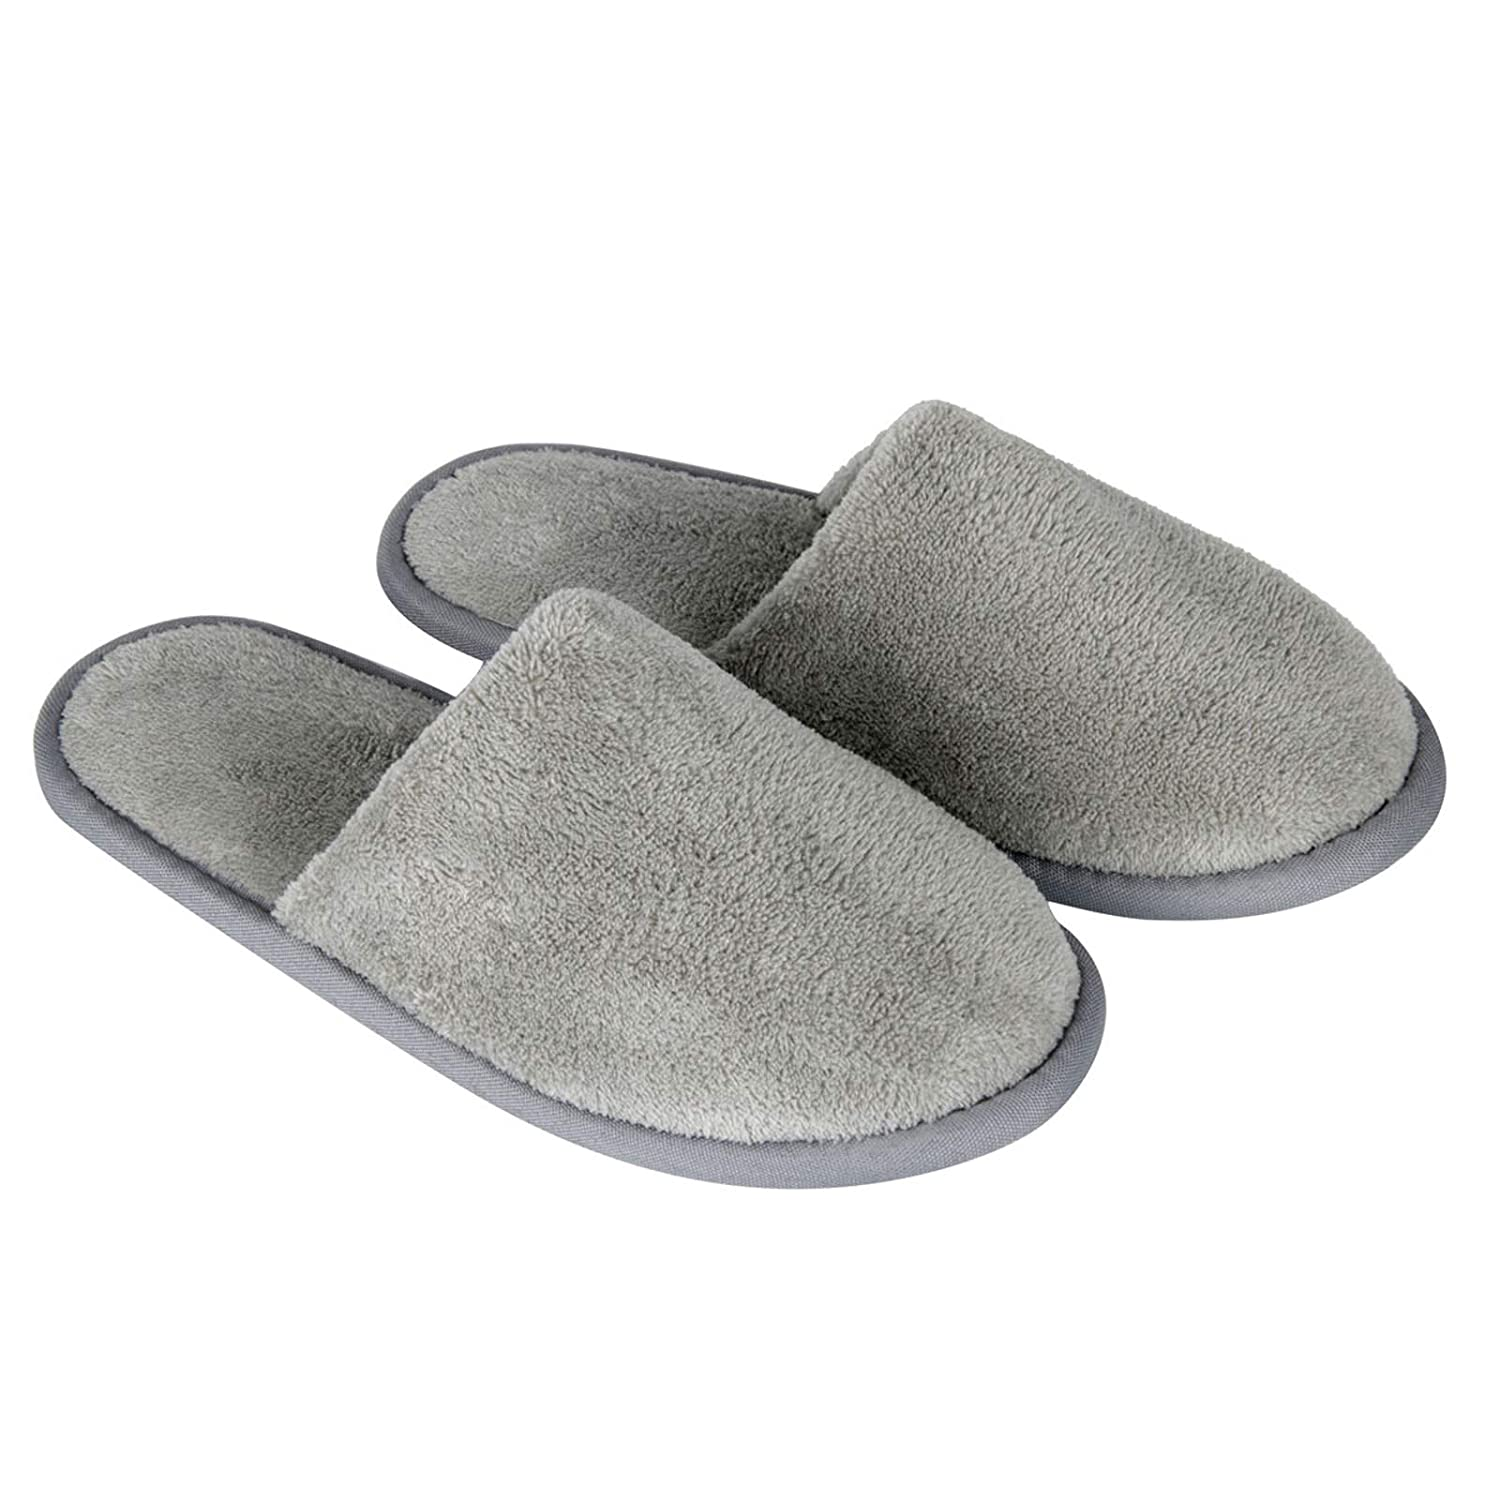 Spa Super sale period limited Slippers Closed Sales for sale Toe Large Hotel Indoor Disposable Size Slip